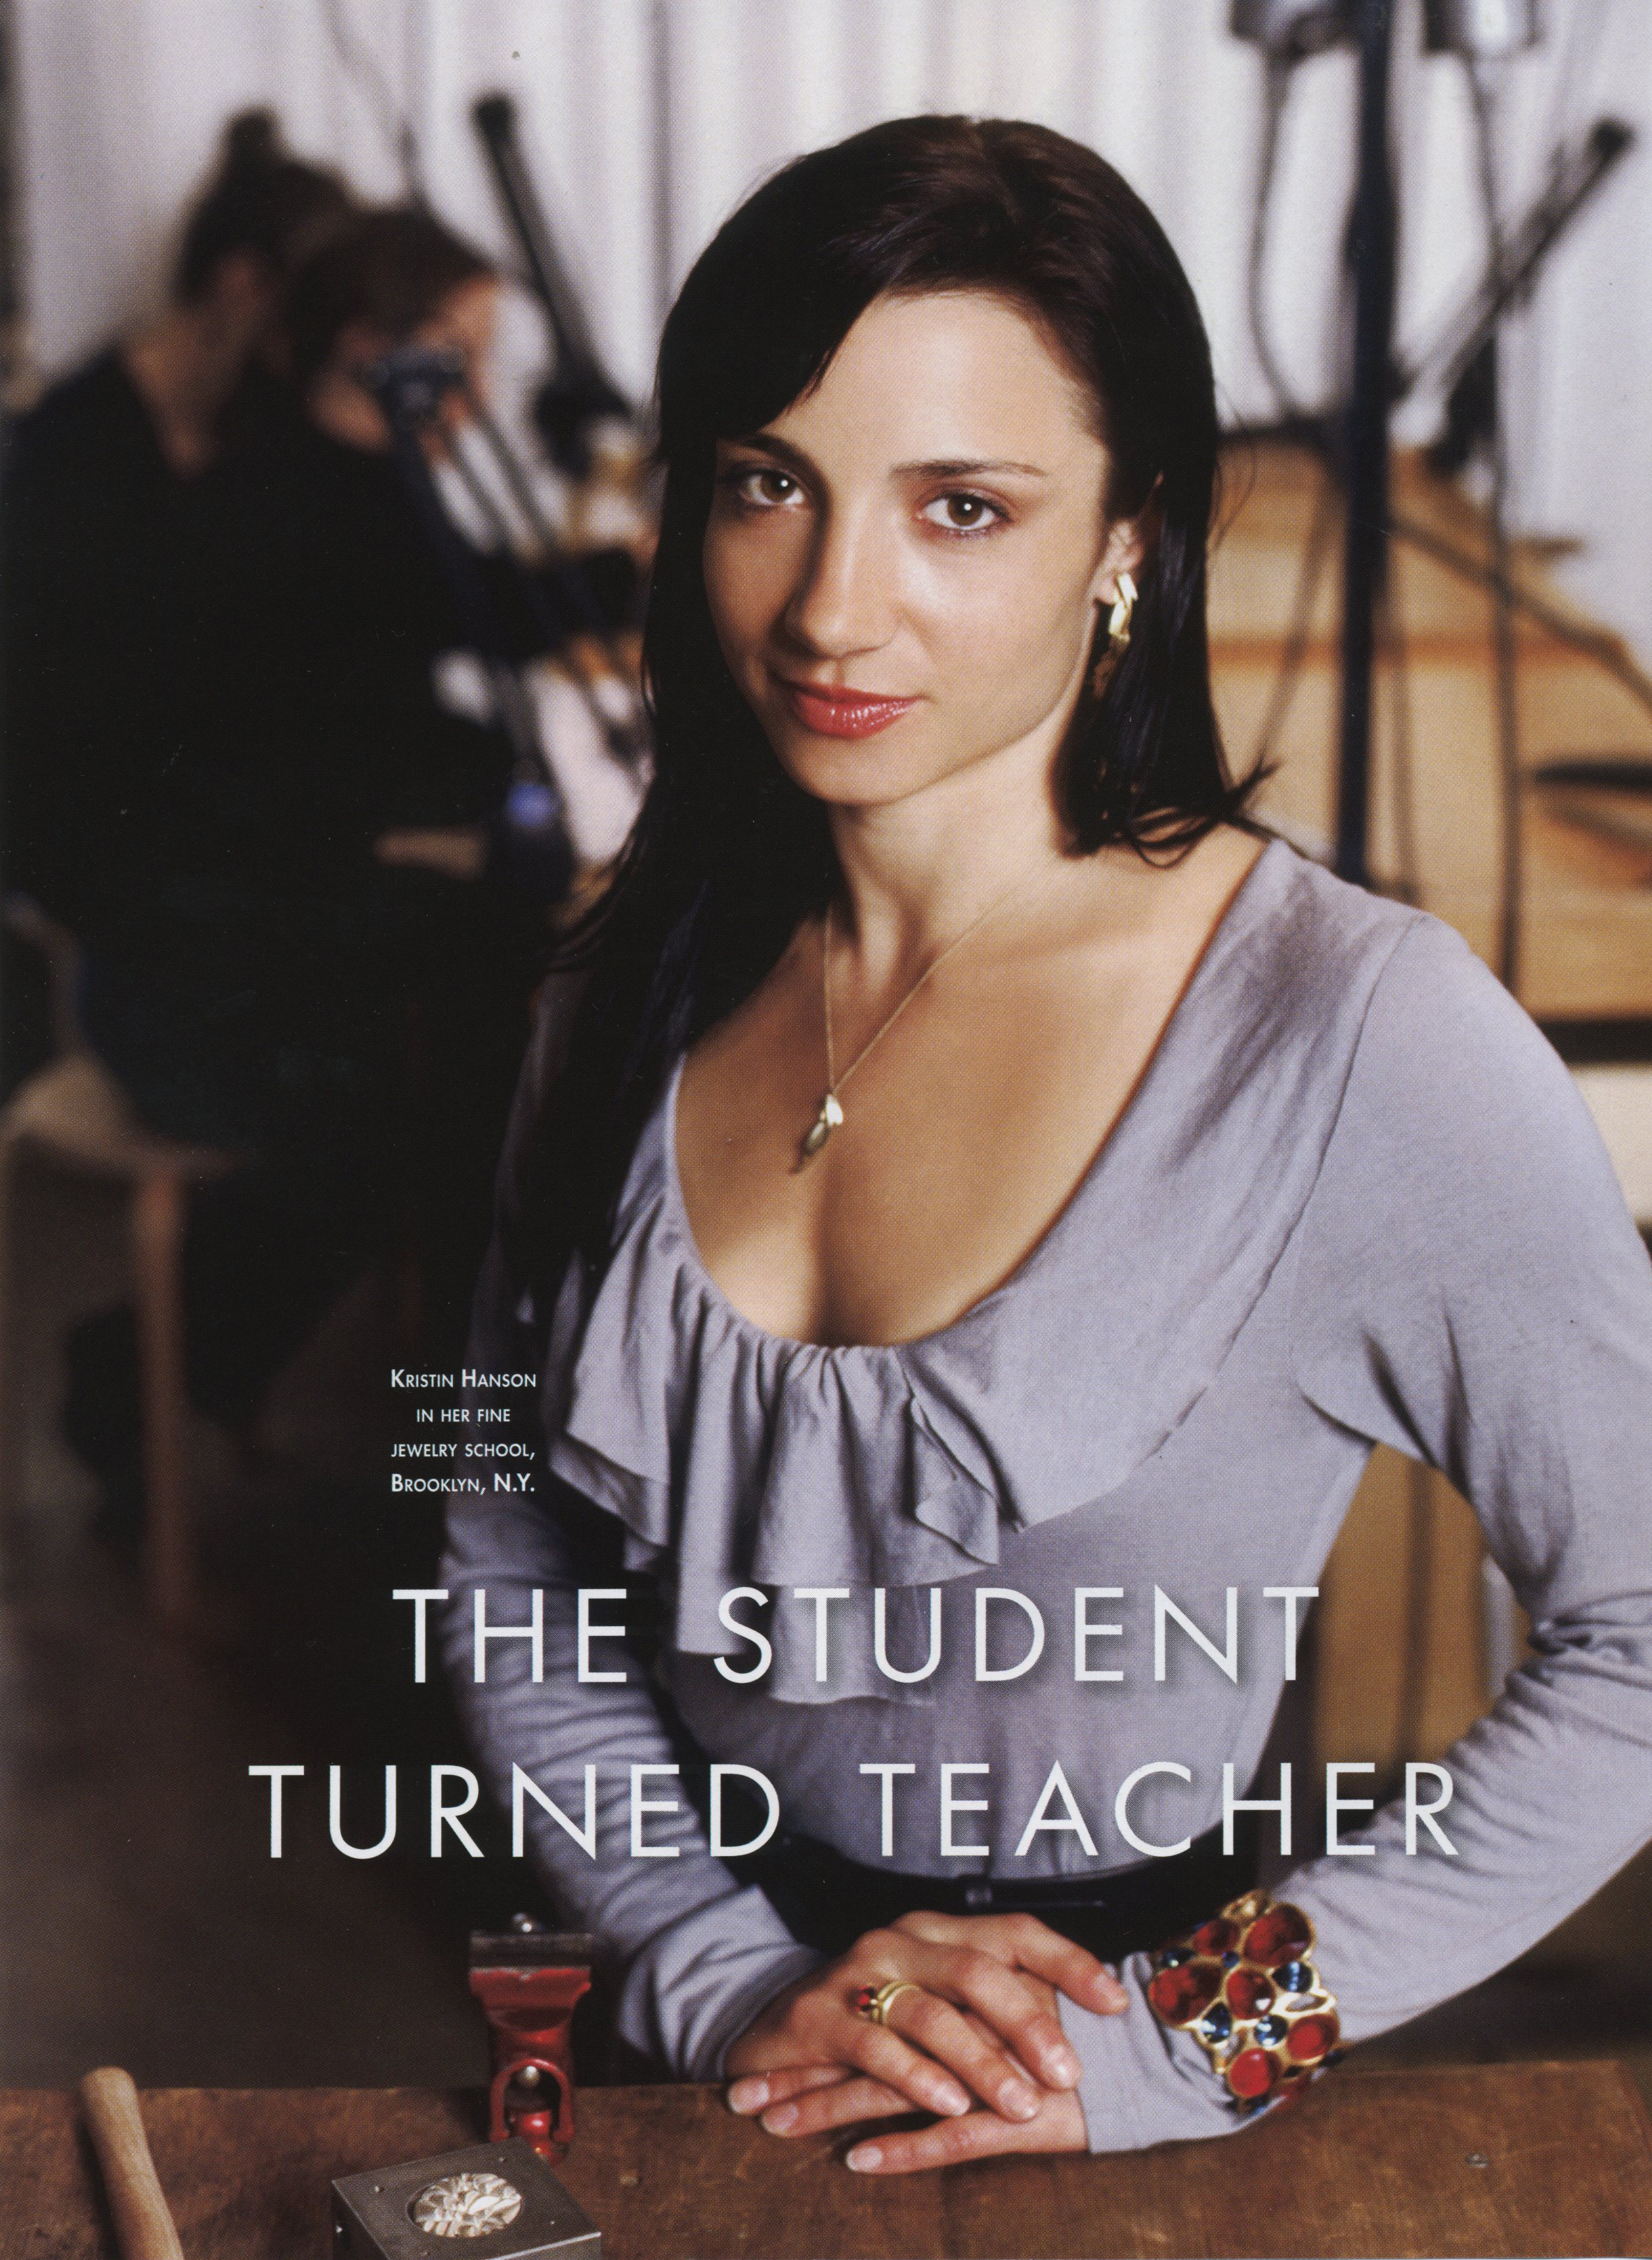 Student turned teacher